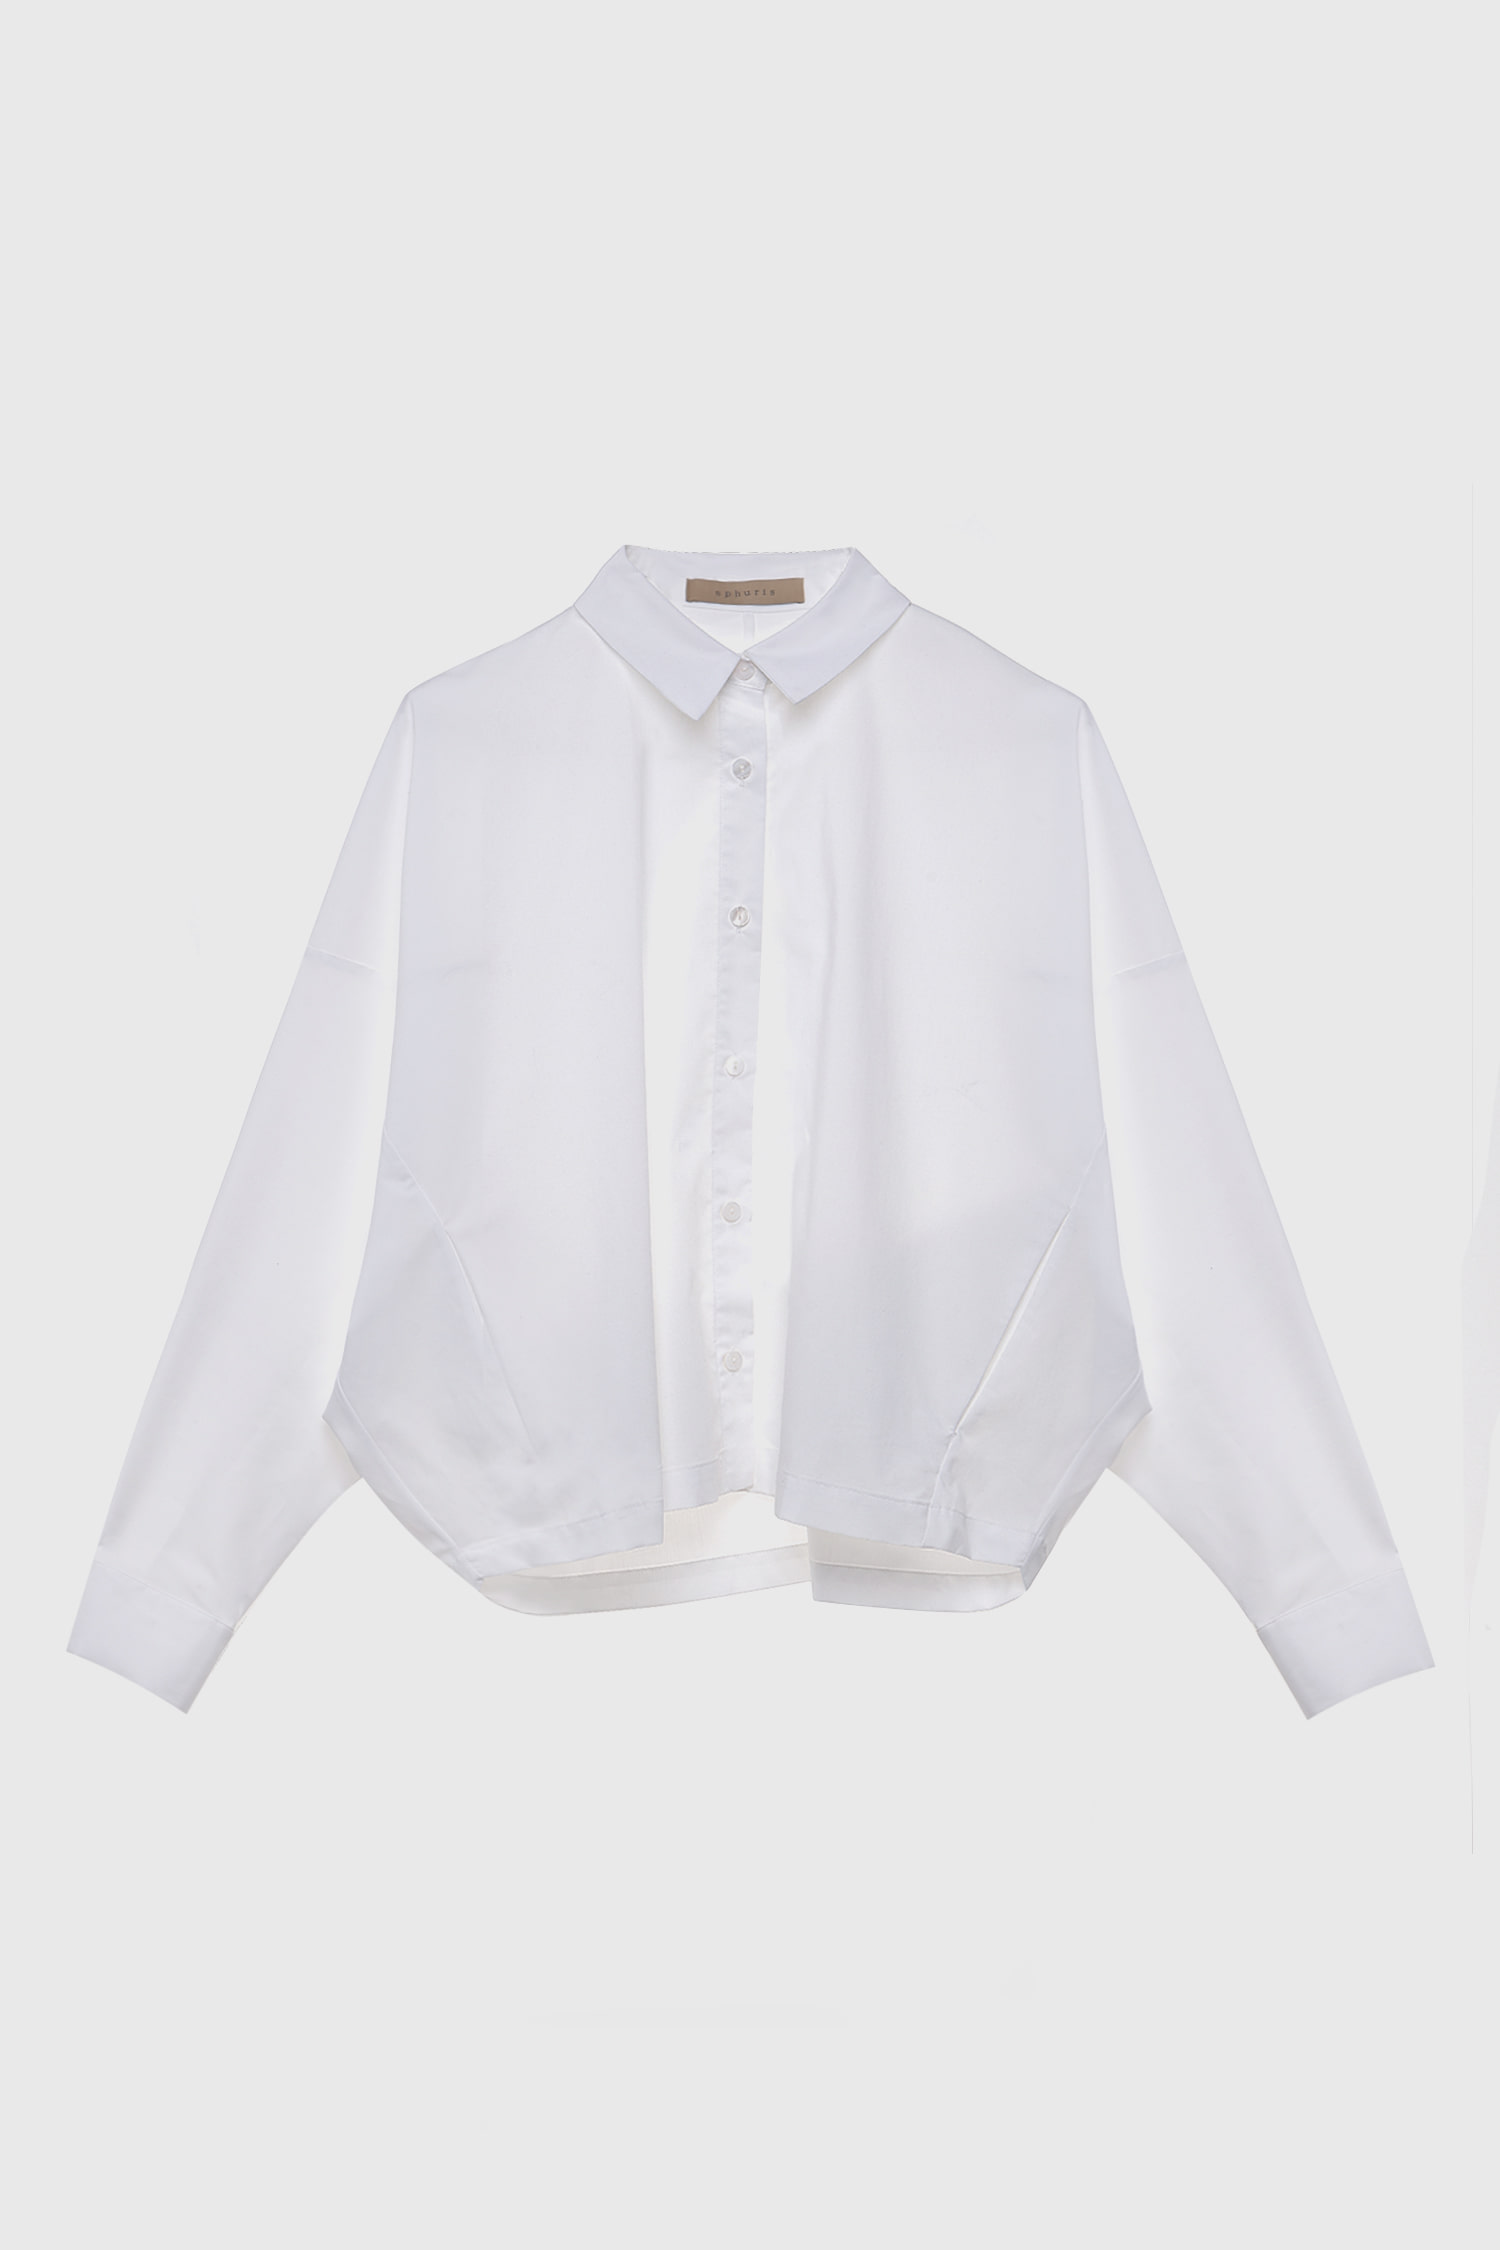 VOLUME SHIRT WHITE